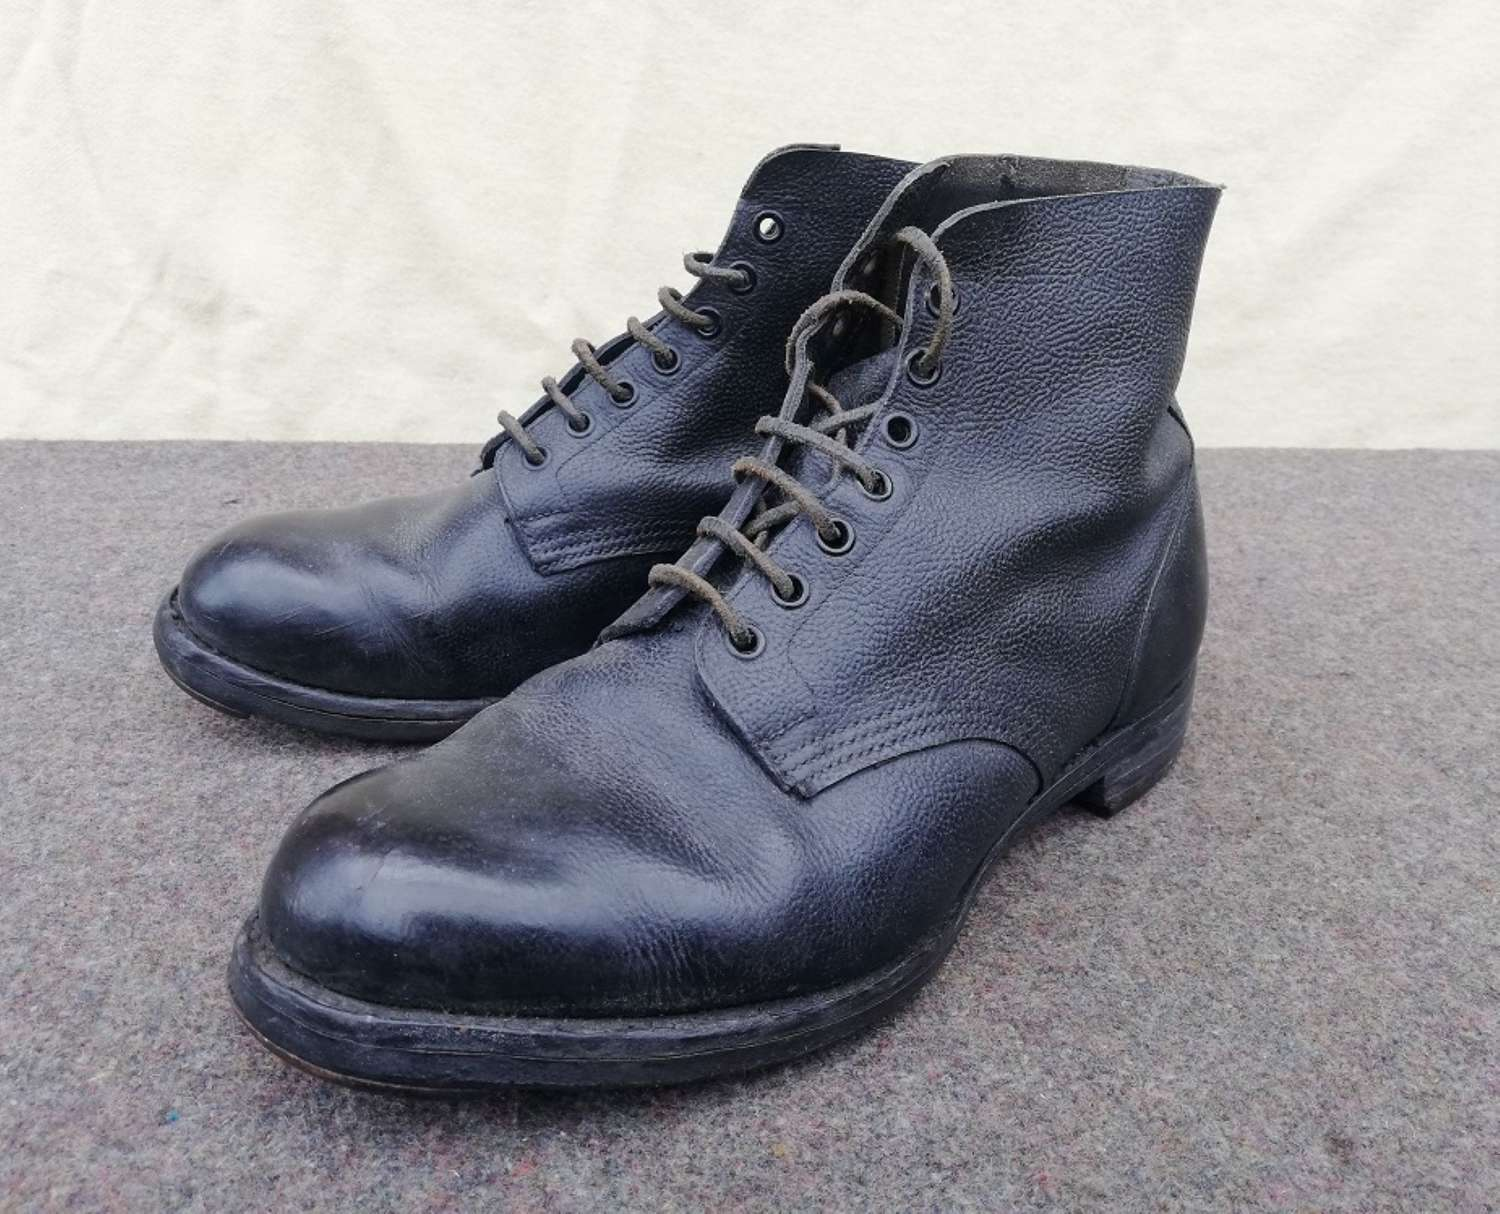 1947 Dated RAF/ Navy Pattern Ankle Boots